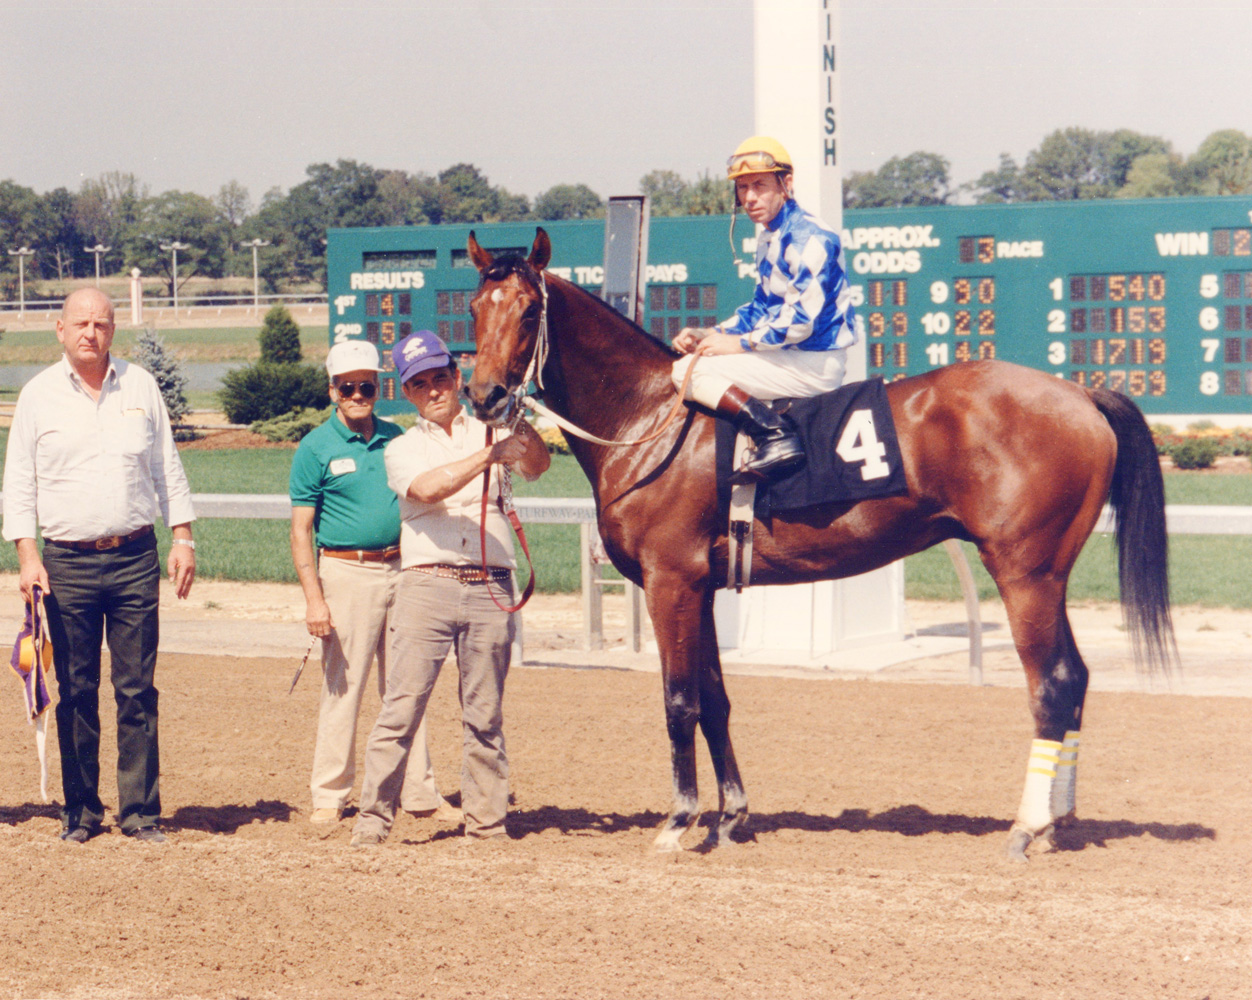 Don Brumfield and Alysheba in the winner's circle at Turfway Park (Lang Photos/Museum Collection)